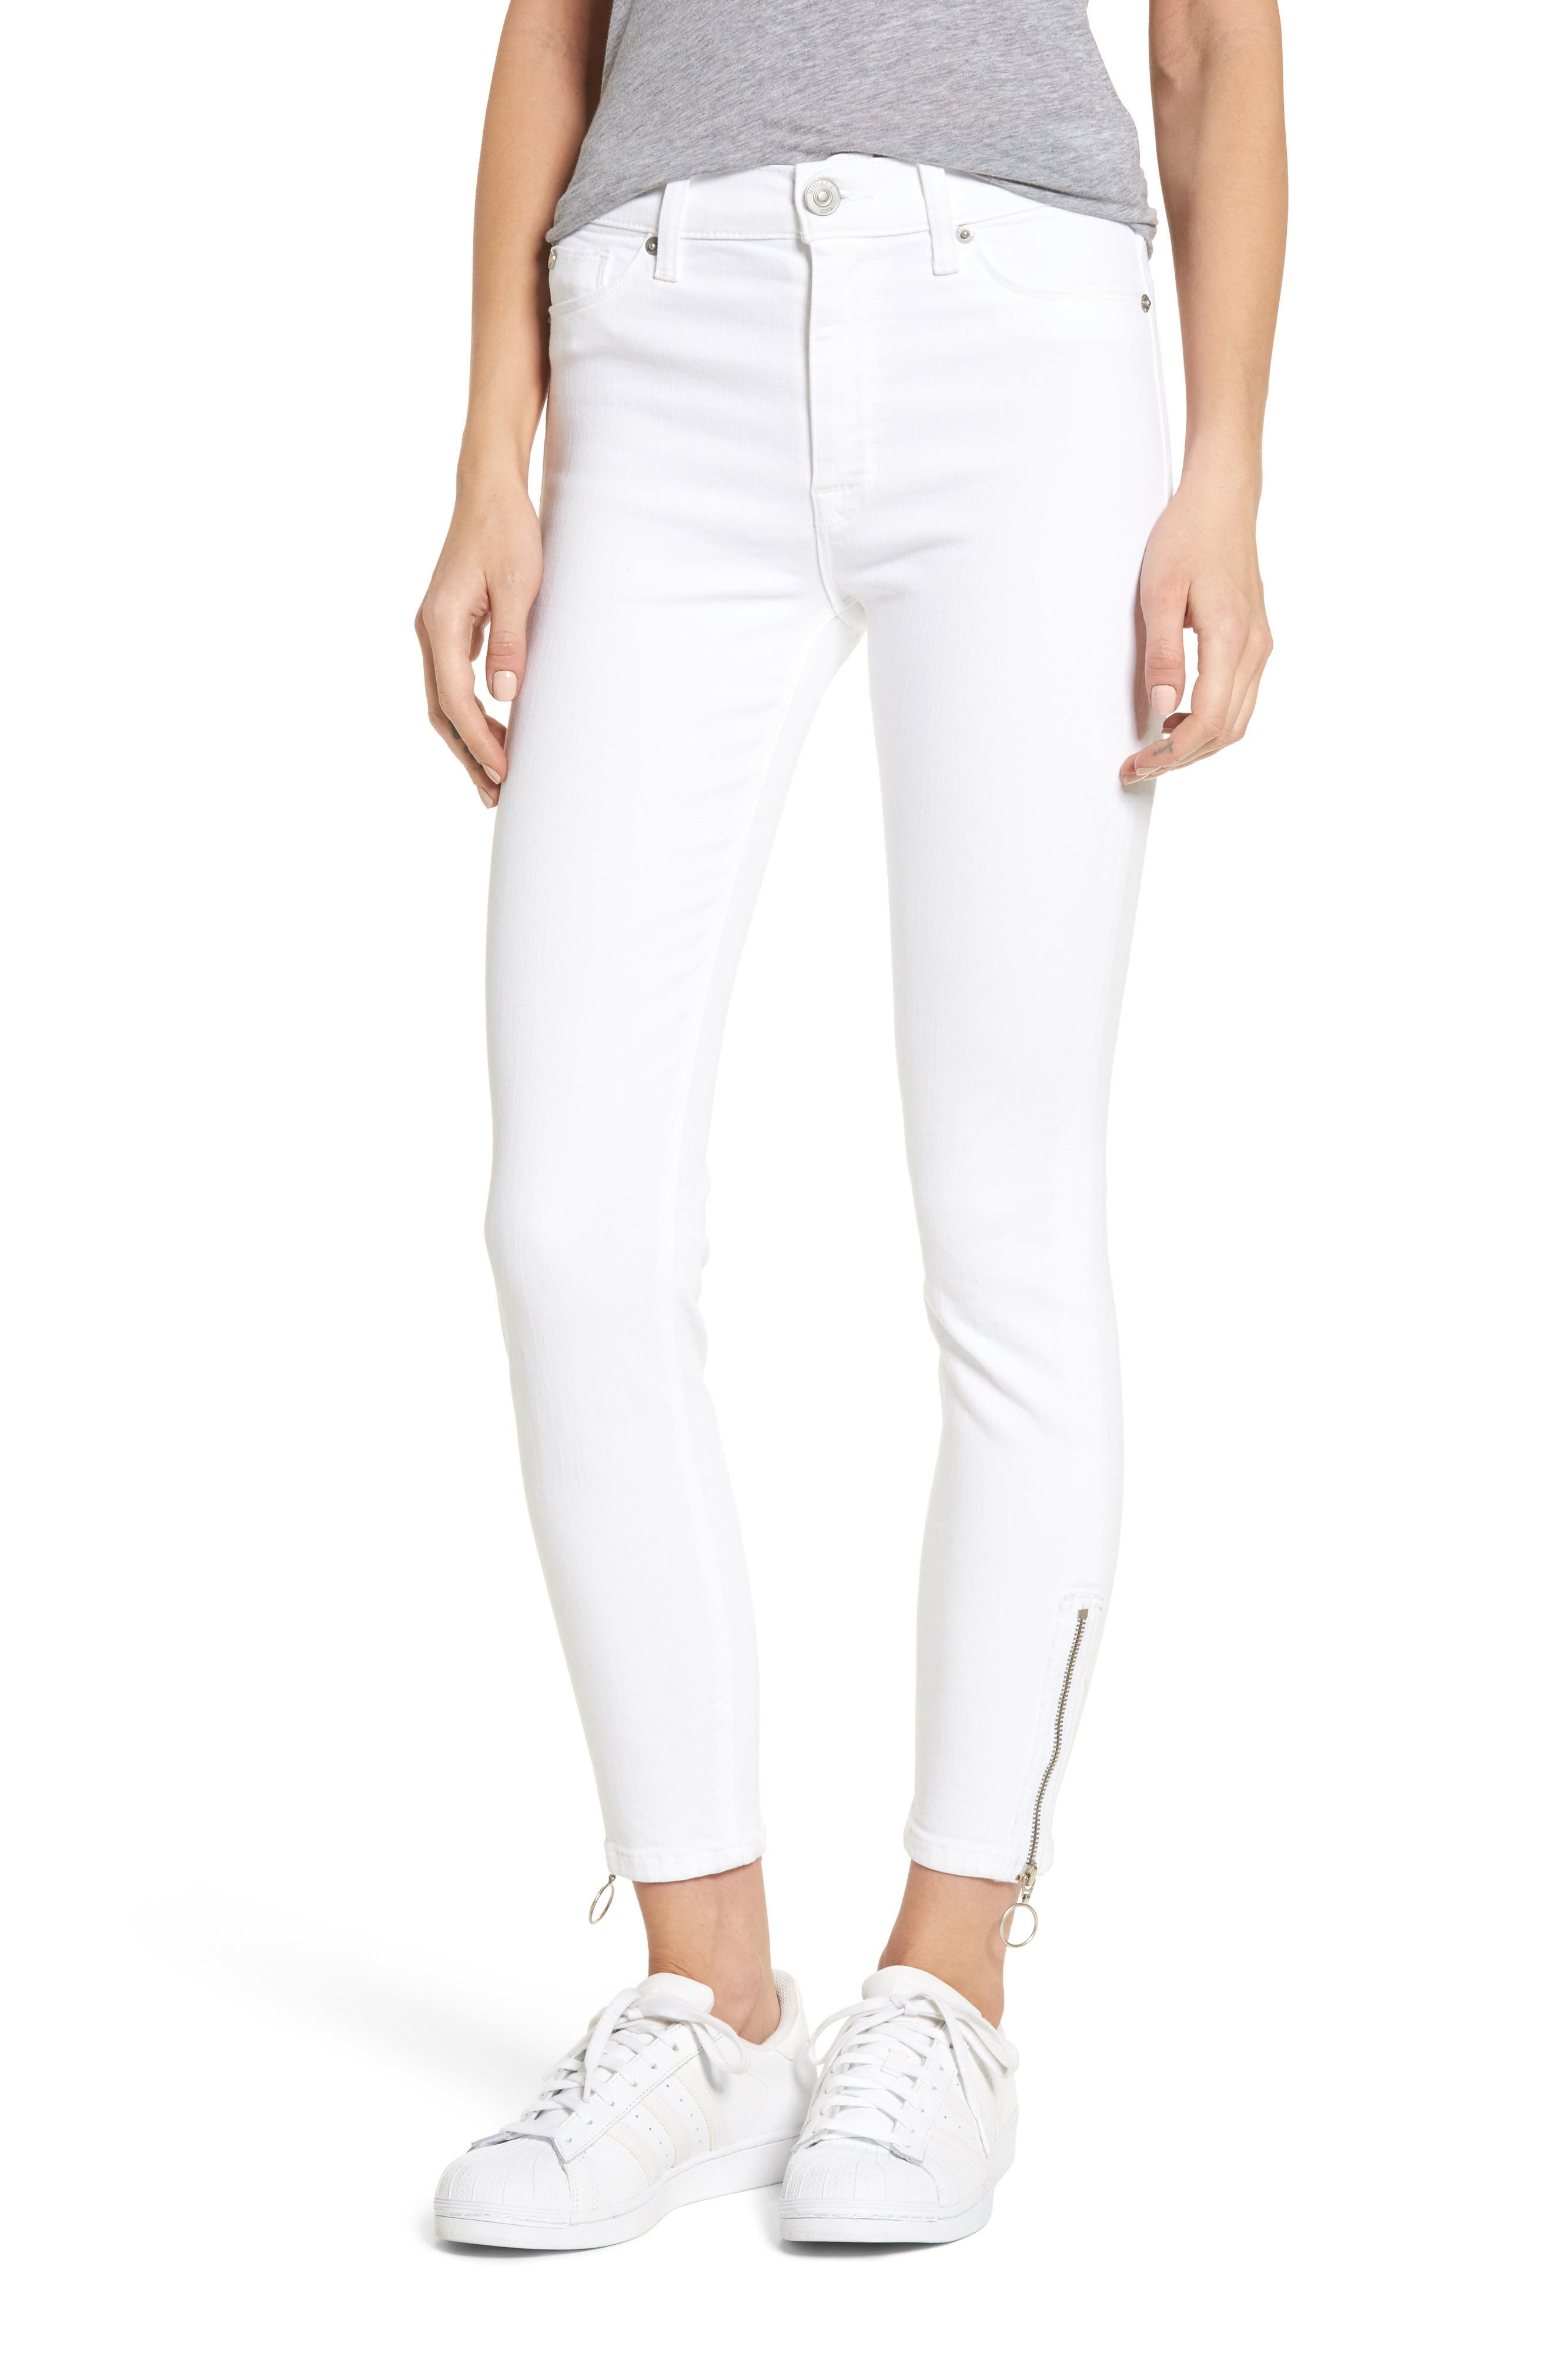 Barbara High Waist Ankle Skinny Jeans,                         Main,                         color, Optical White